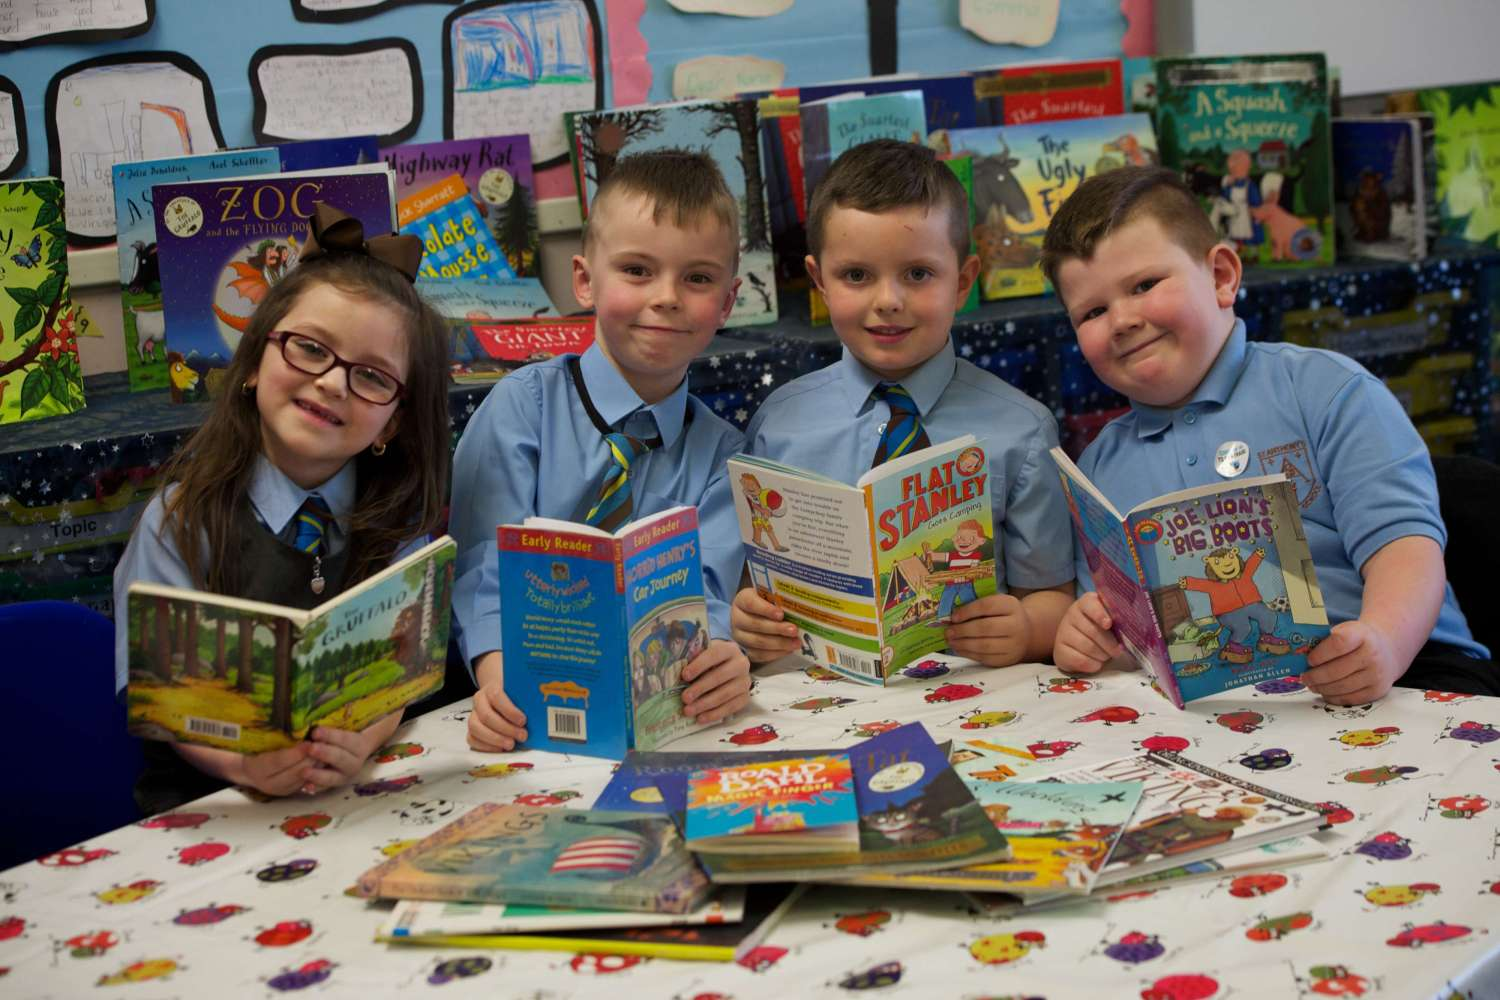 St Anthony's Primary 2 Pupils - Olivia Regan, Jack McLaughlin, David Baird and Corey Jamieson